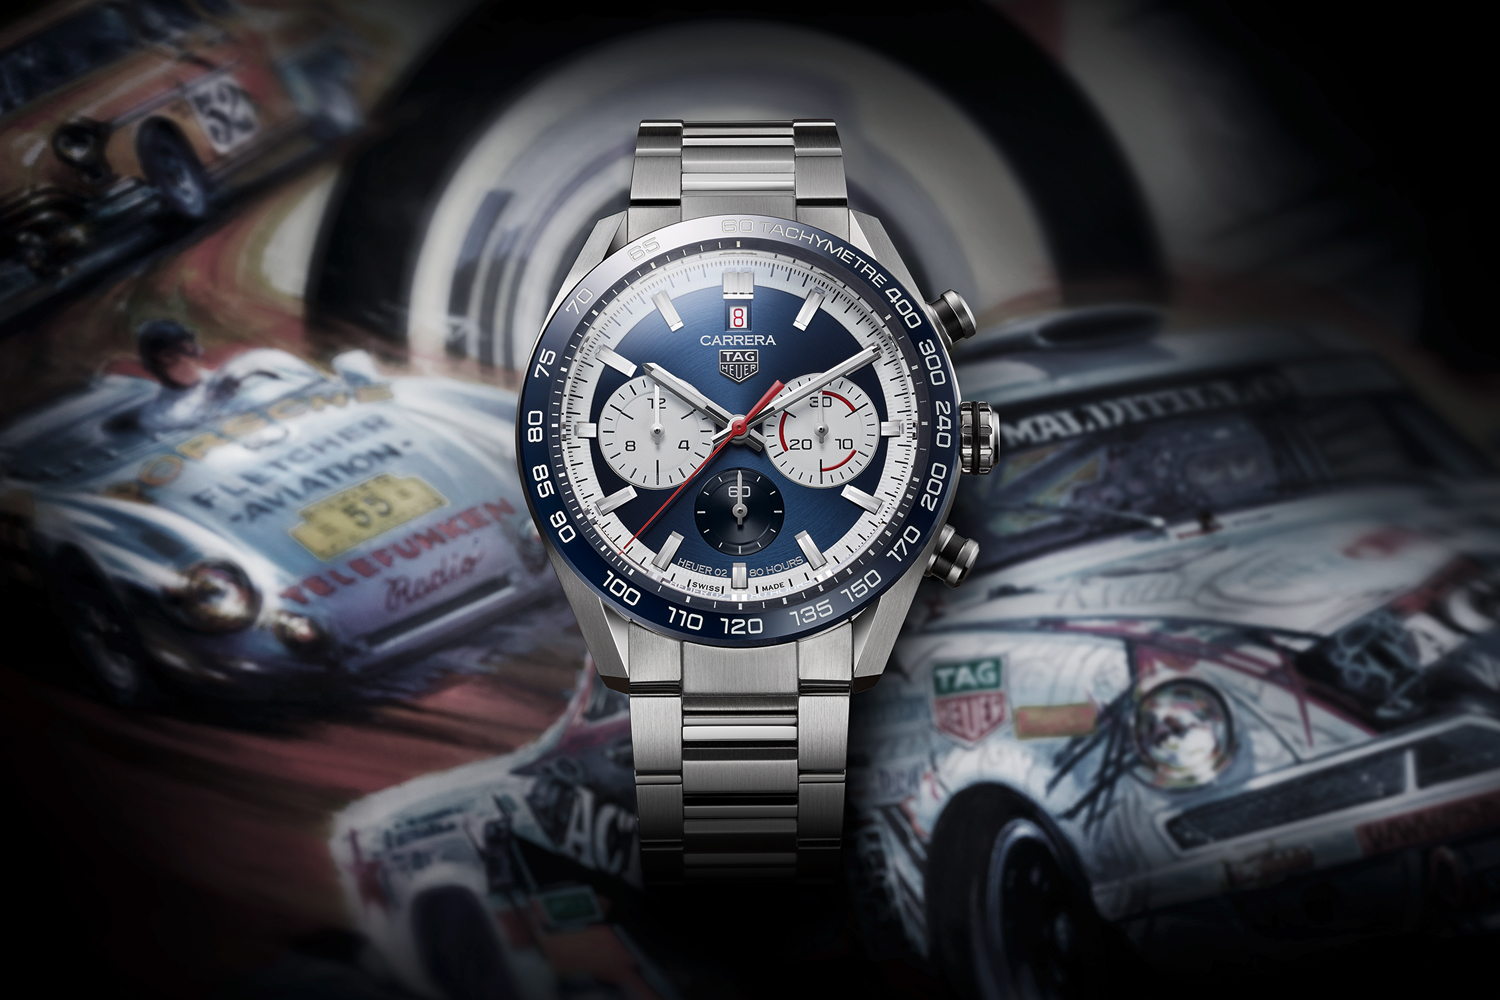 TAG Heuer Carrera Sport Chronograph 44 mm Calibre Heuer 02 Automatic is also available in a blue dial variation with a blue ceramic fixed tachymeter bezel